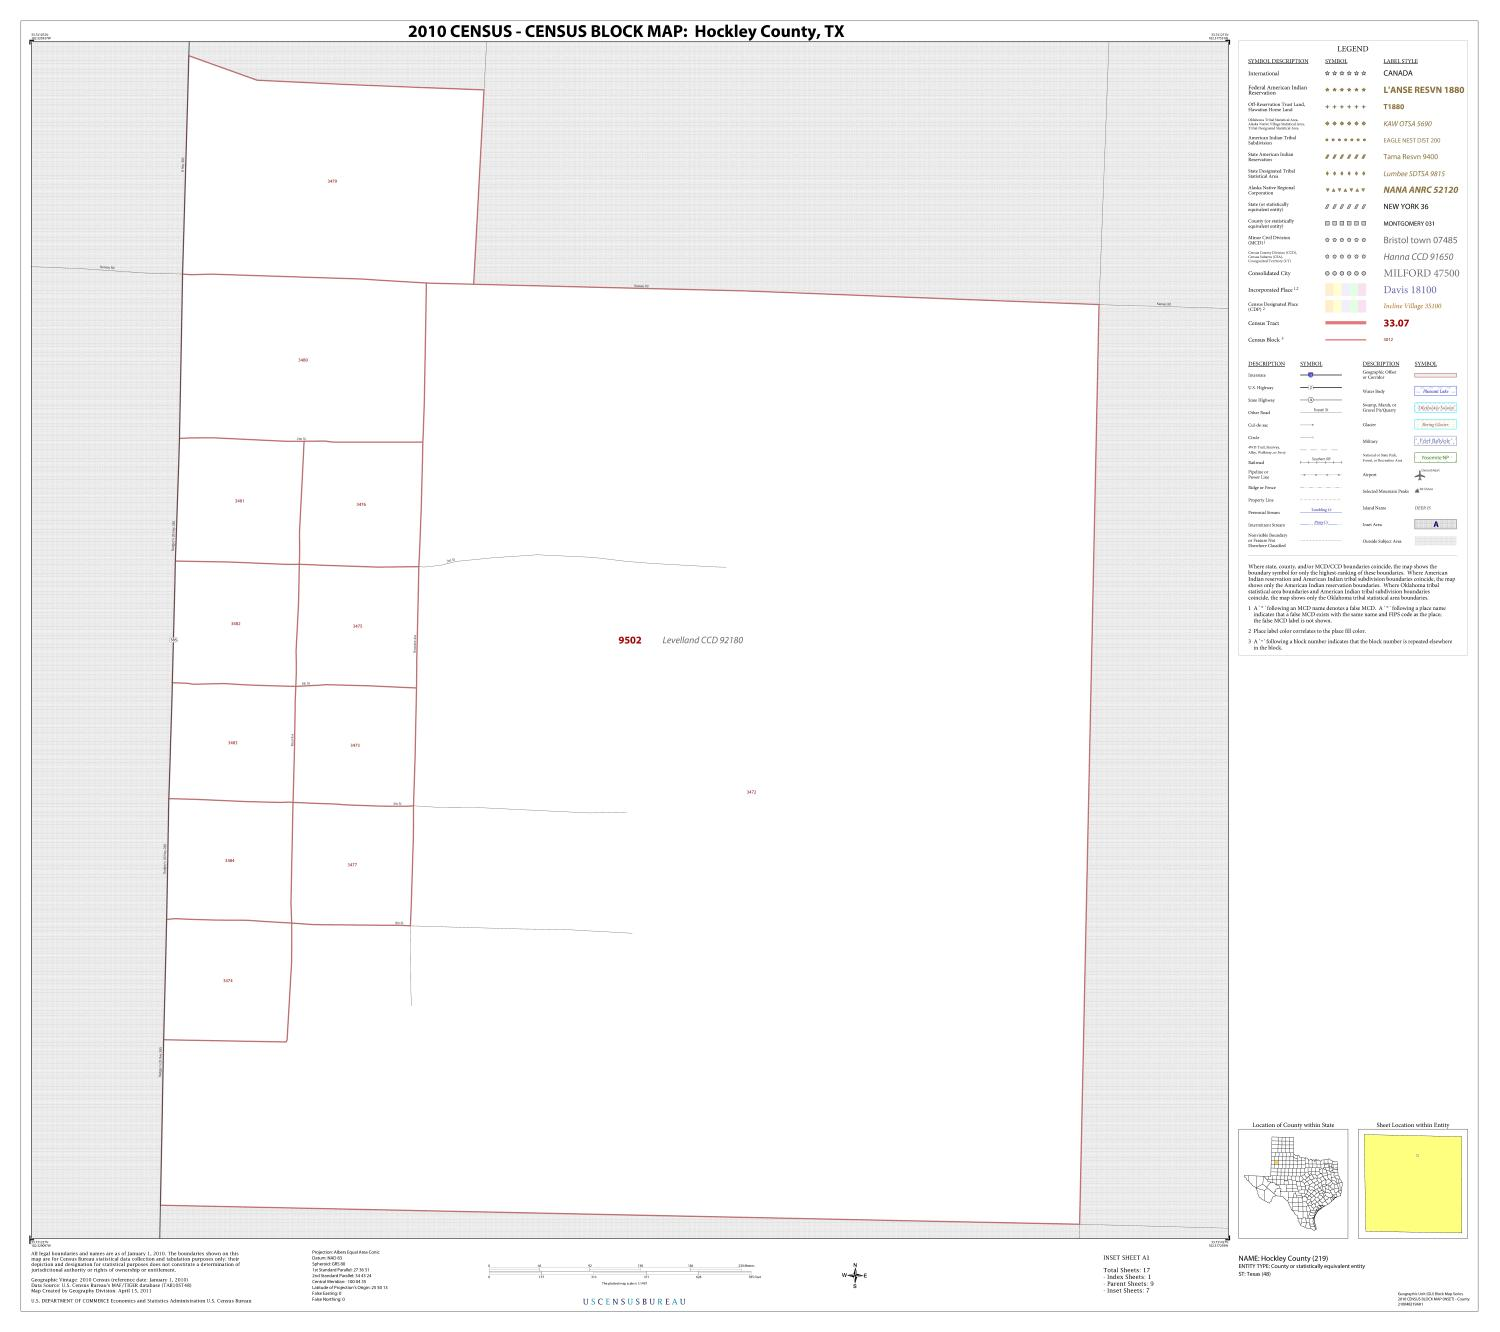 2010 Census County Block Map: Hockley County, Inset A01                                                                                                      [Sequence #]: 1 of 1